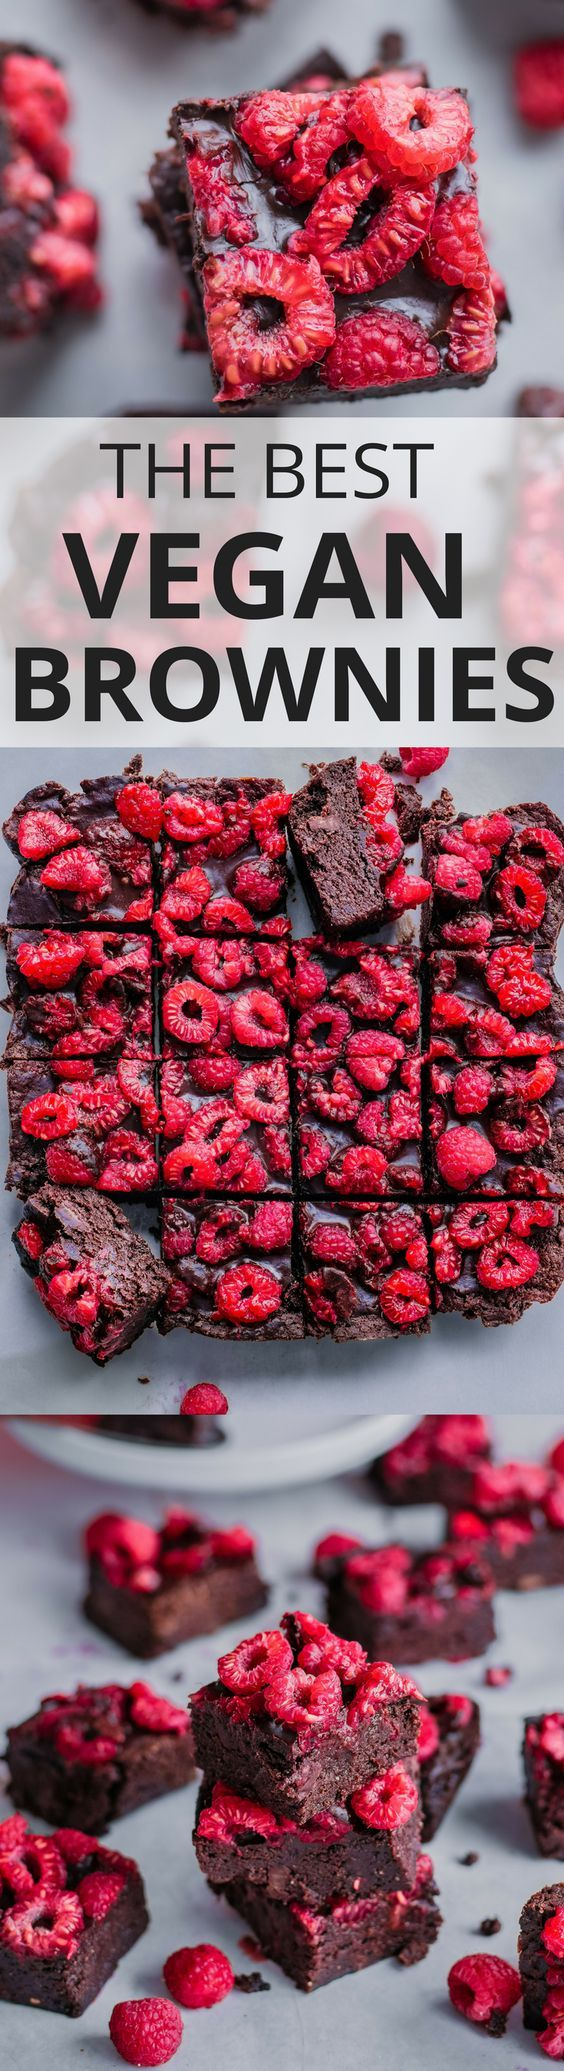 The BEST Vegan Brownies Ever! Chewy, rich and fudgy, these vegan brownies have everything…